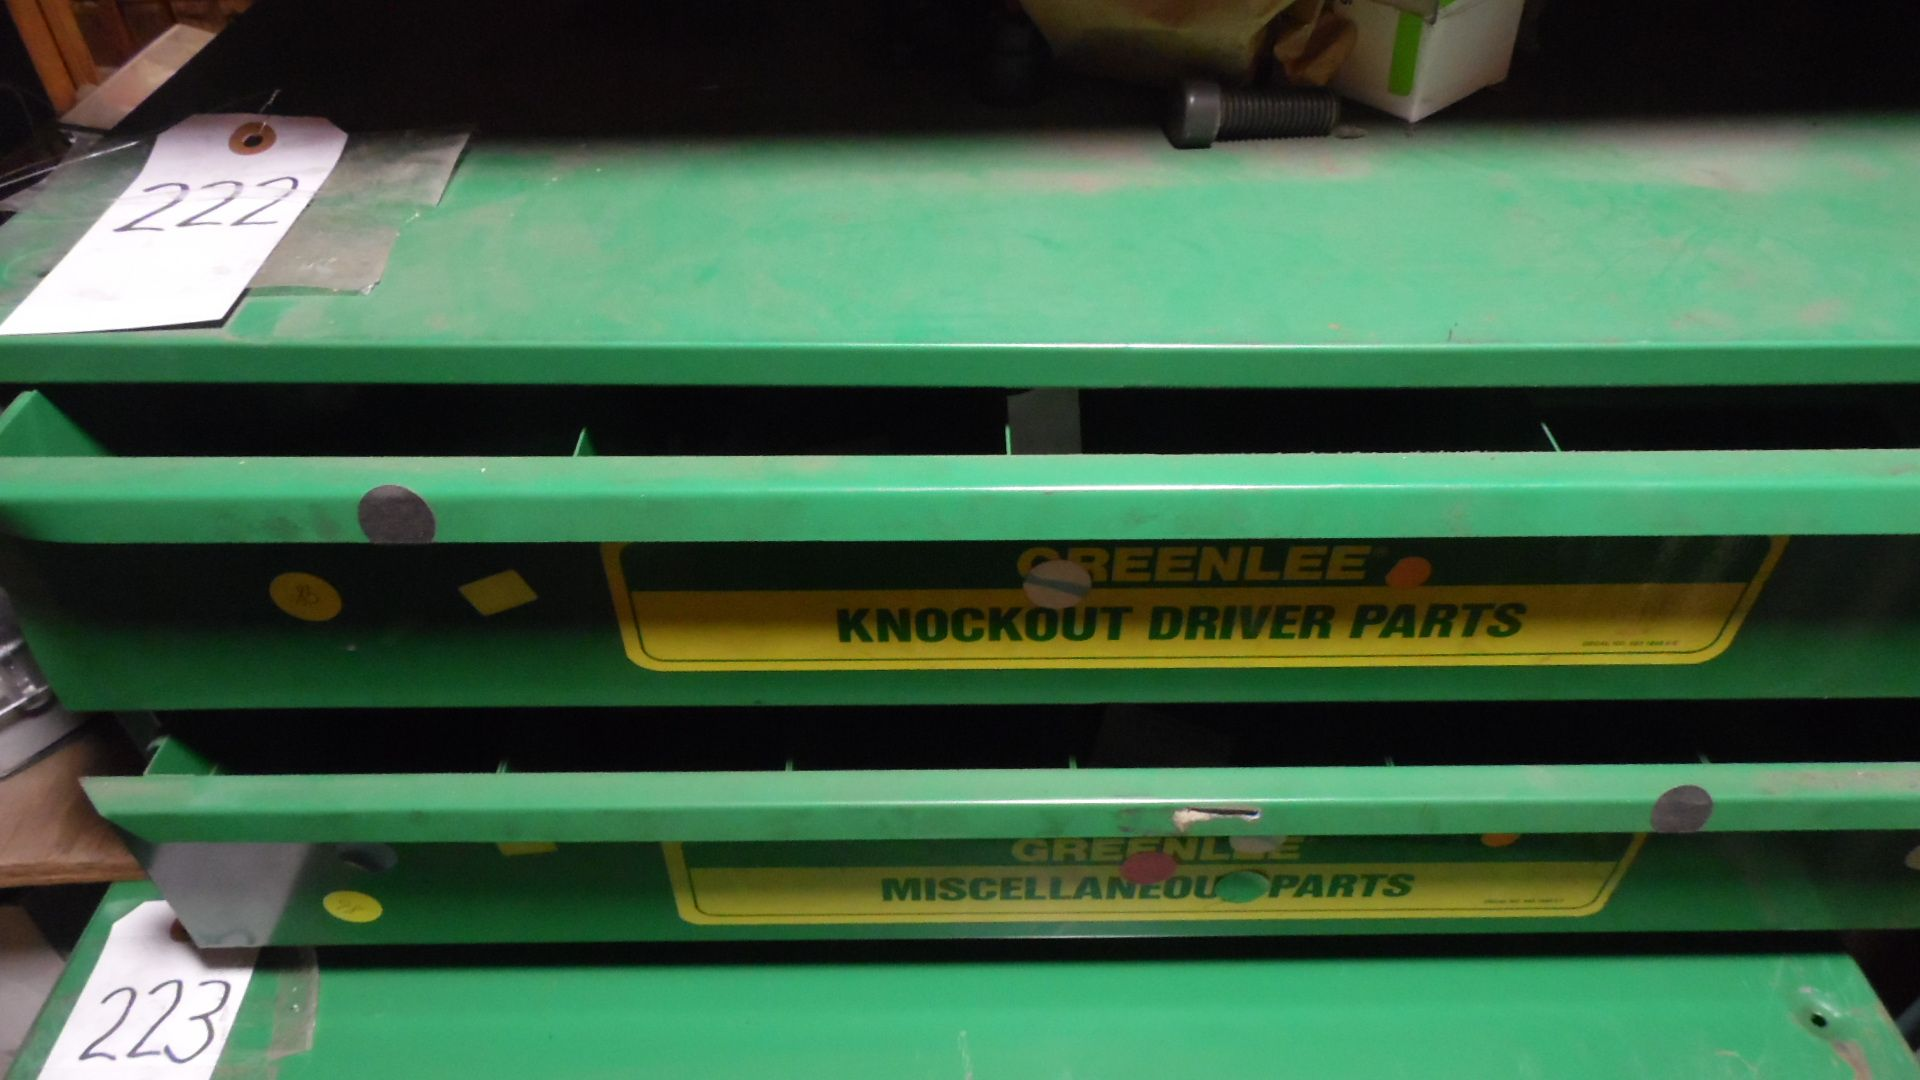 Lot 222 - GREEN LEE KNOCKOUT DRIVER PARTS